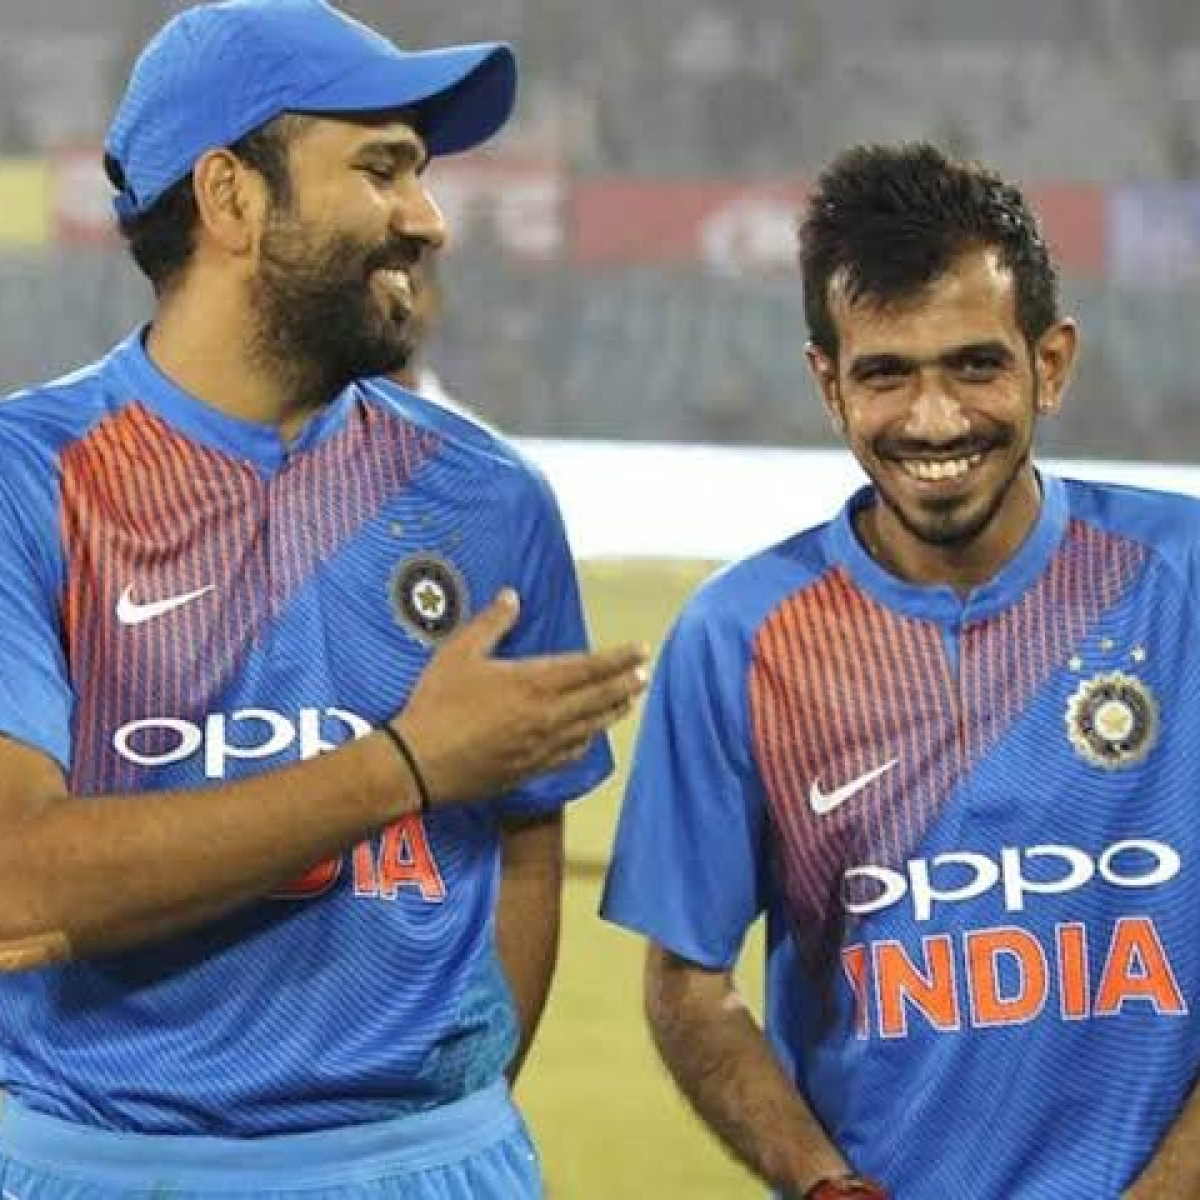 'That's my little boy...': Rohit Sharma mimics Chahal's fielding in a fun Instagram post